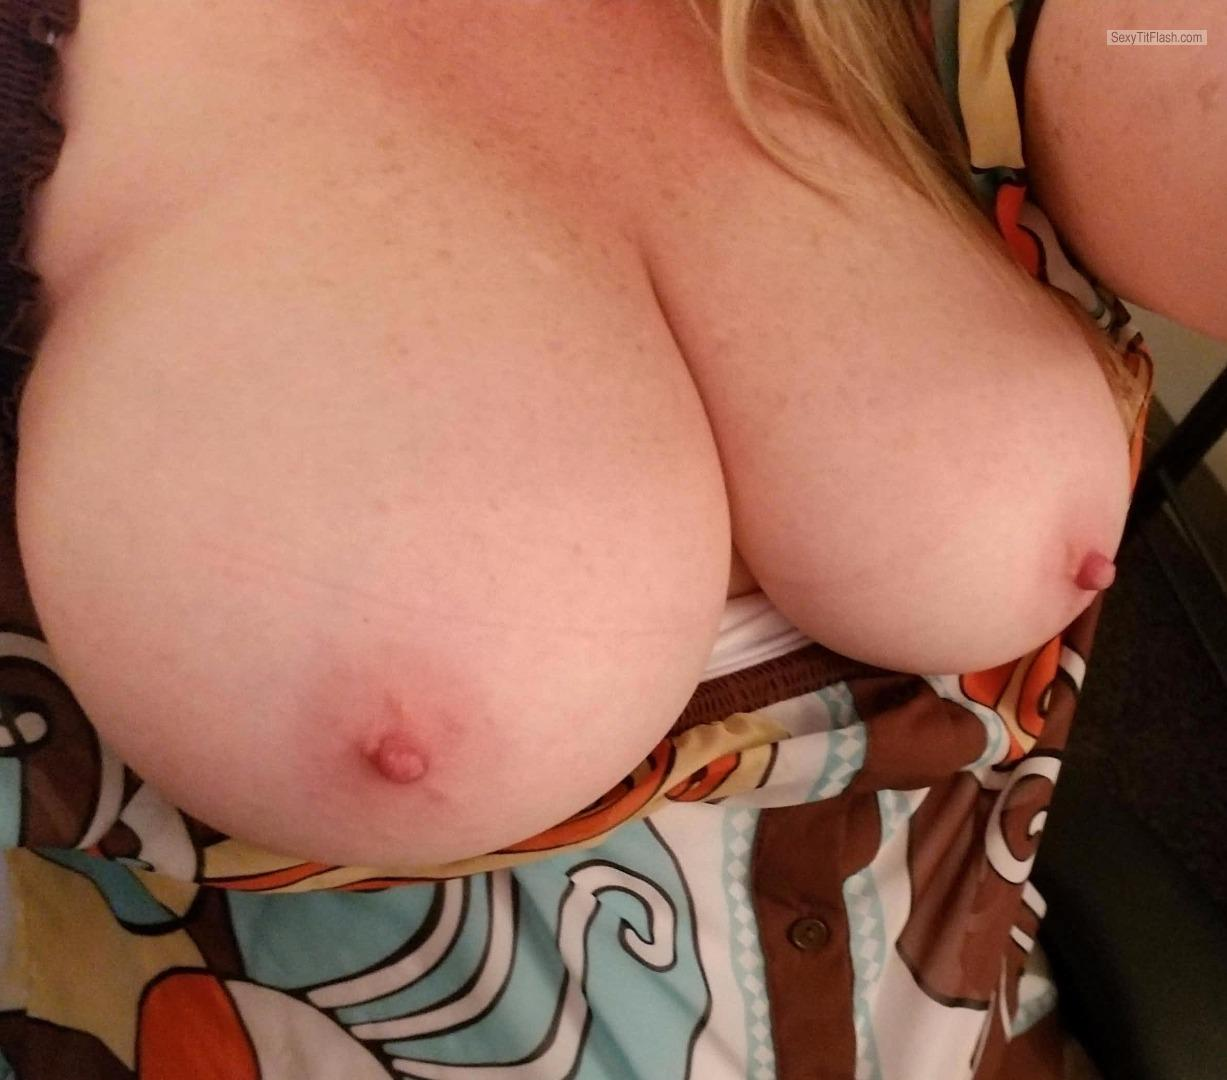 Tit Flash: My Very Big Tits (Selfie) - Lonely_wife from United States